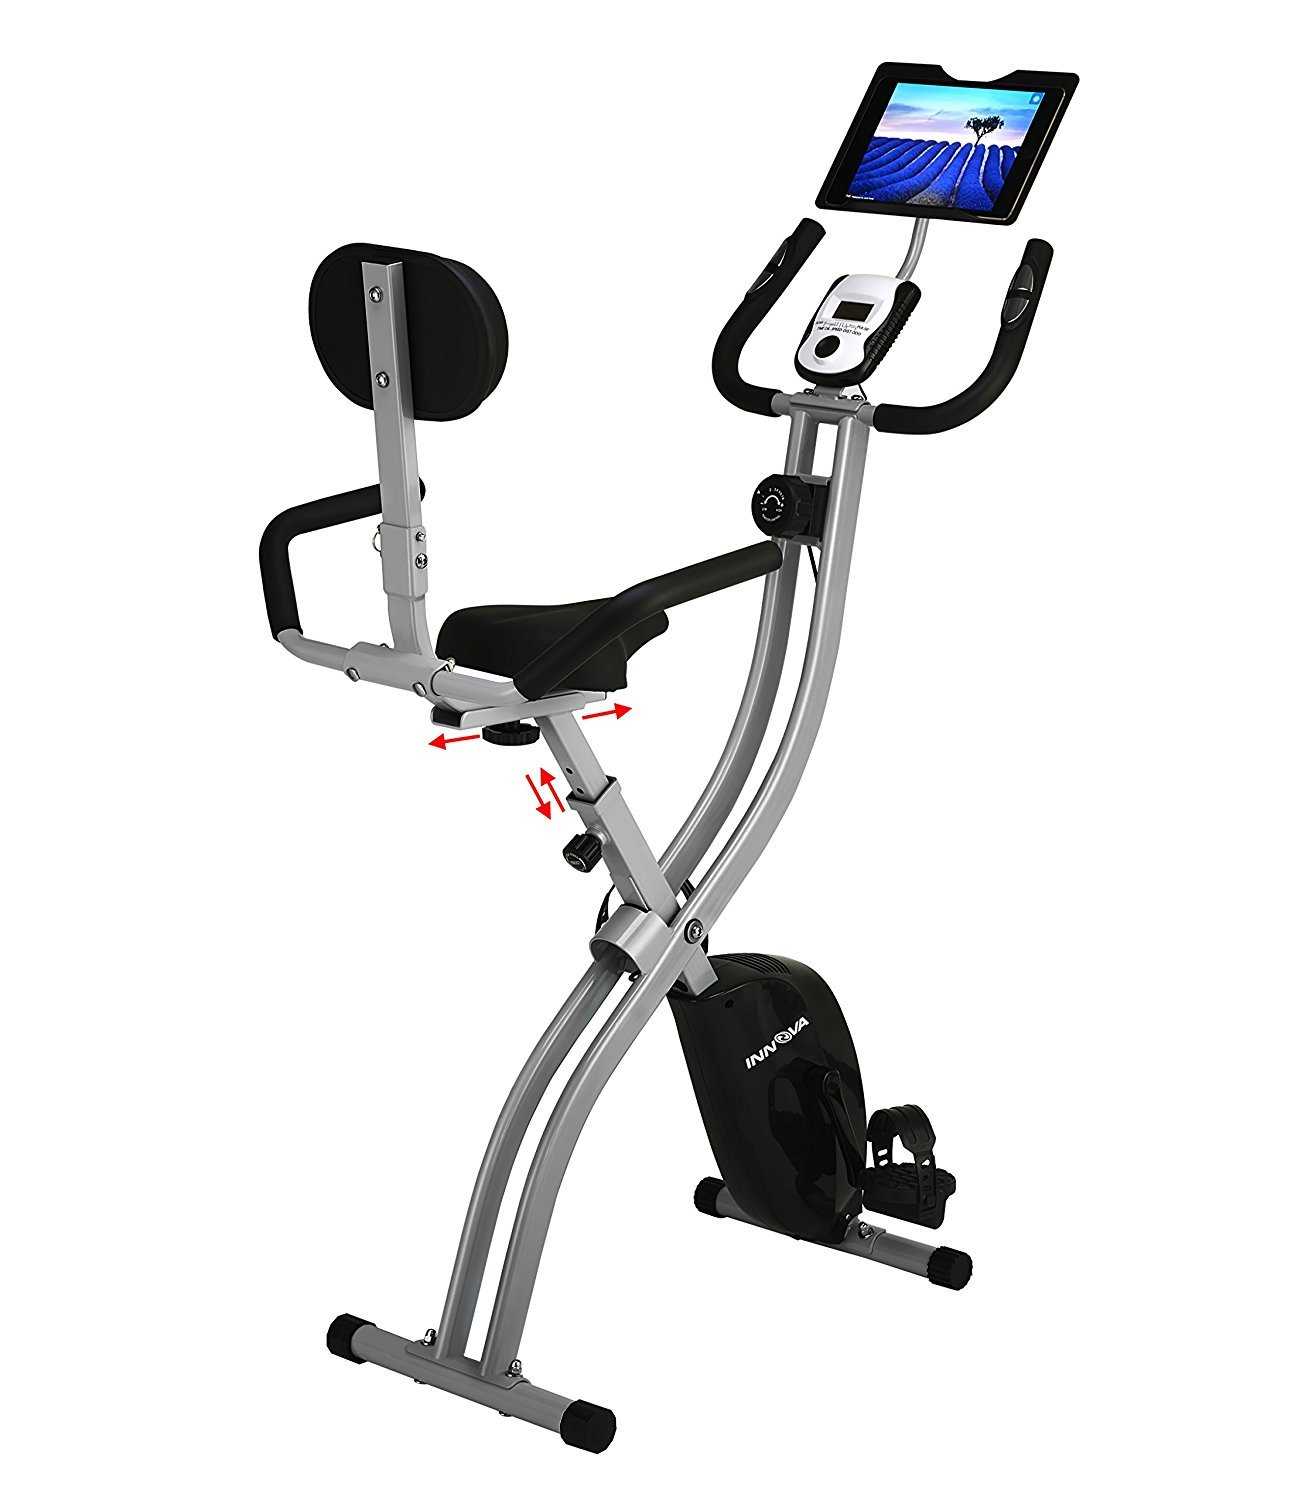 Innova XBR450 Folding Upright Bike with Backrest and iPad-Android Tablet Holder seen here lets you remain productive